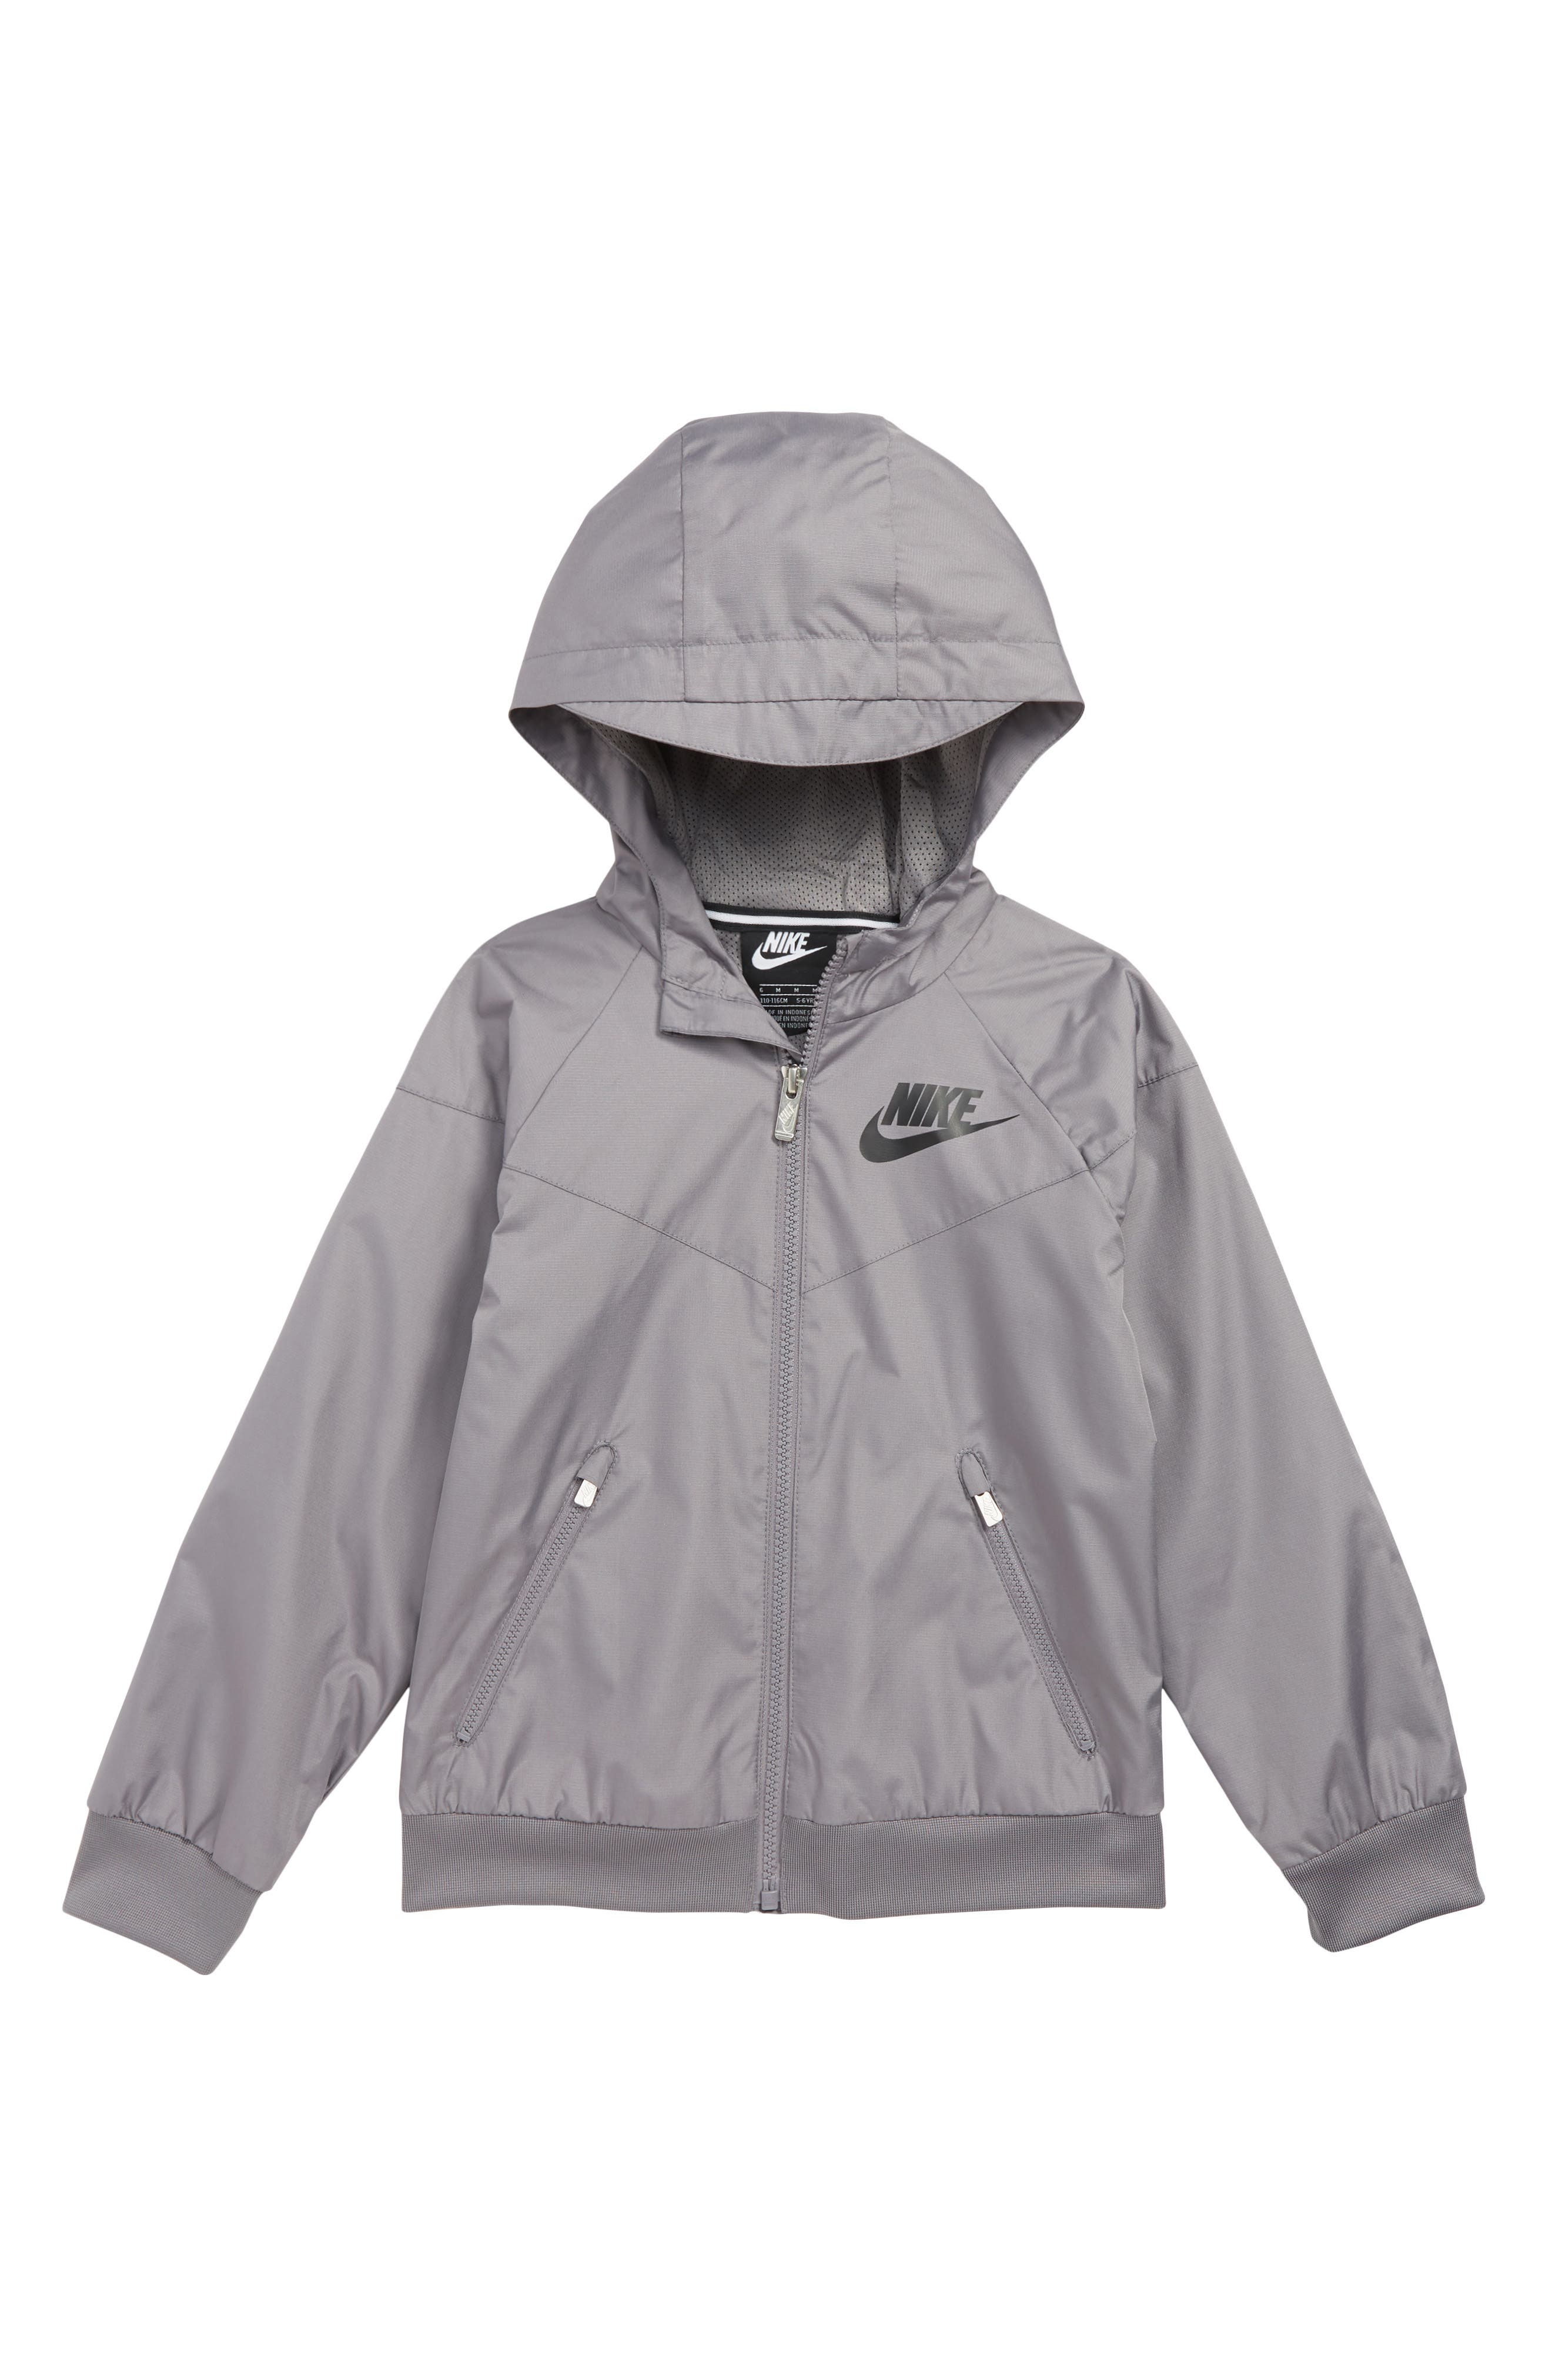 NIKE, Windrunner Water Resistant Hooded Jacket, Main thumbnail 1, color, 032